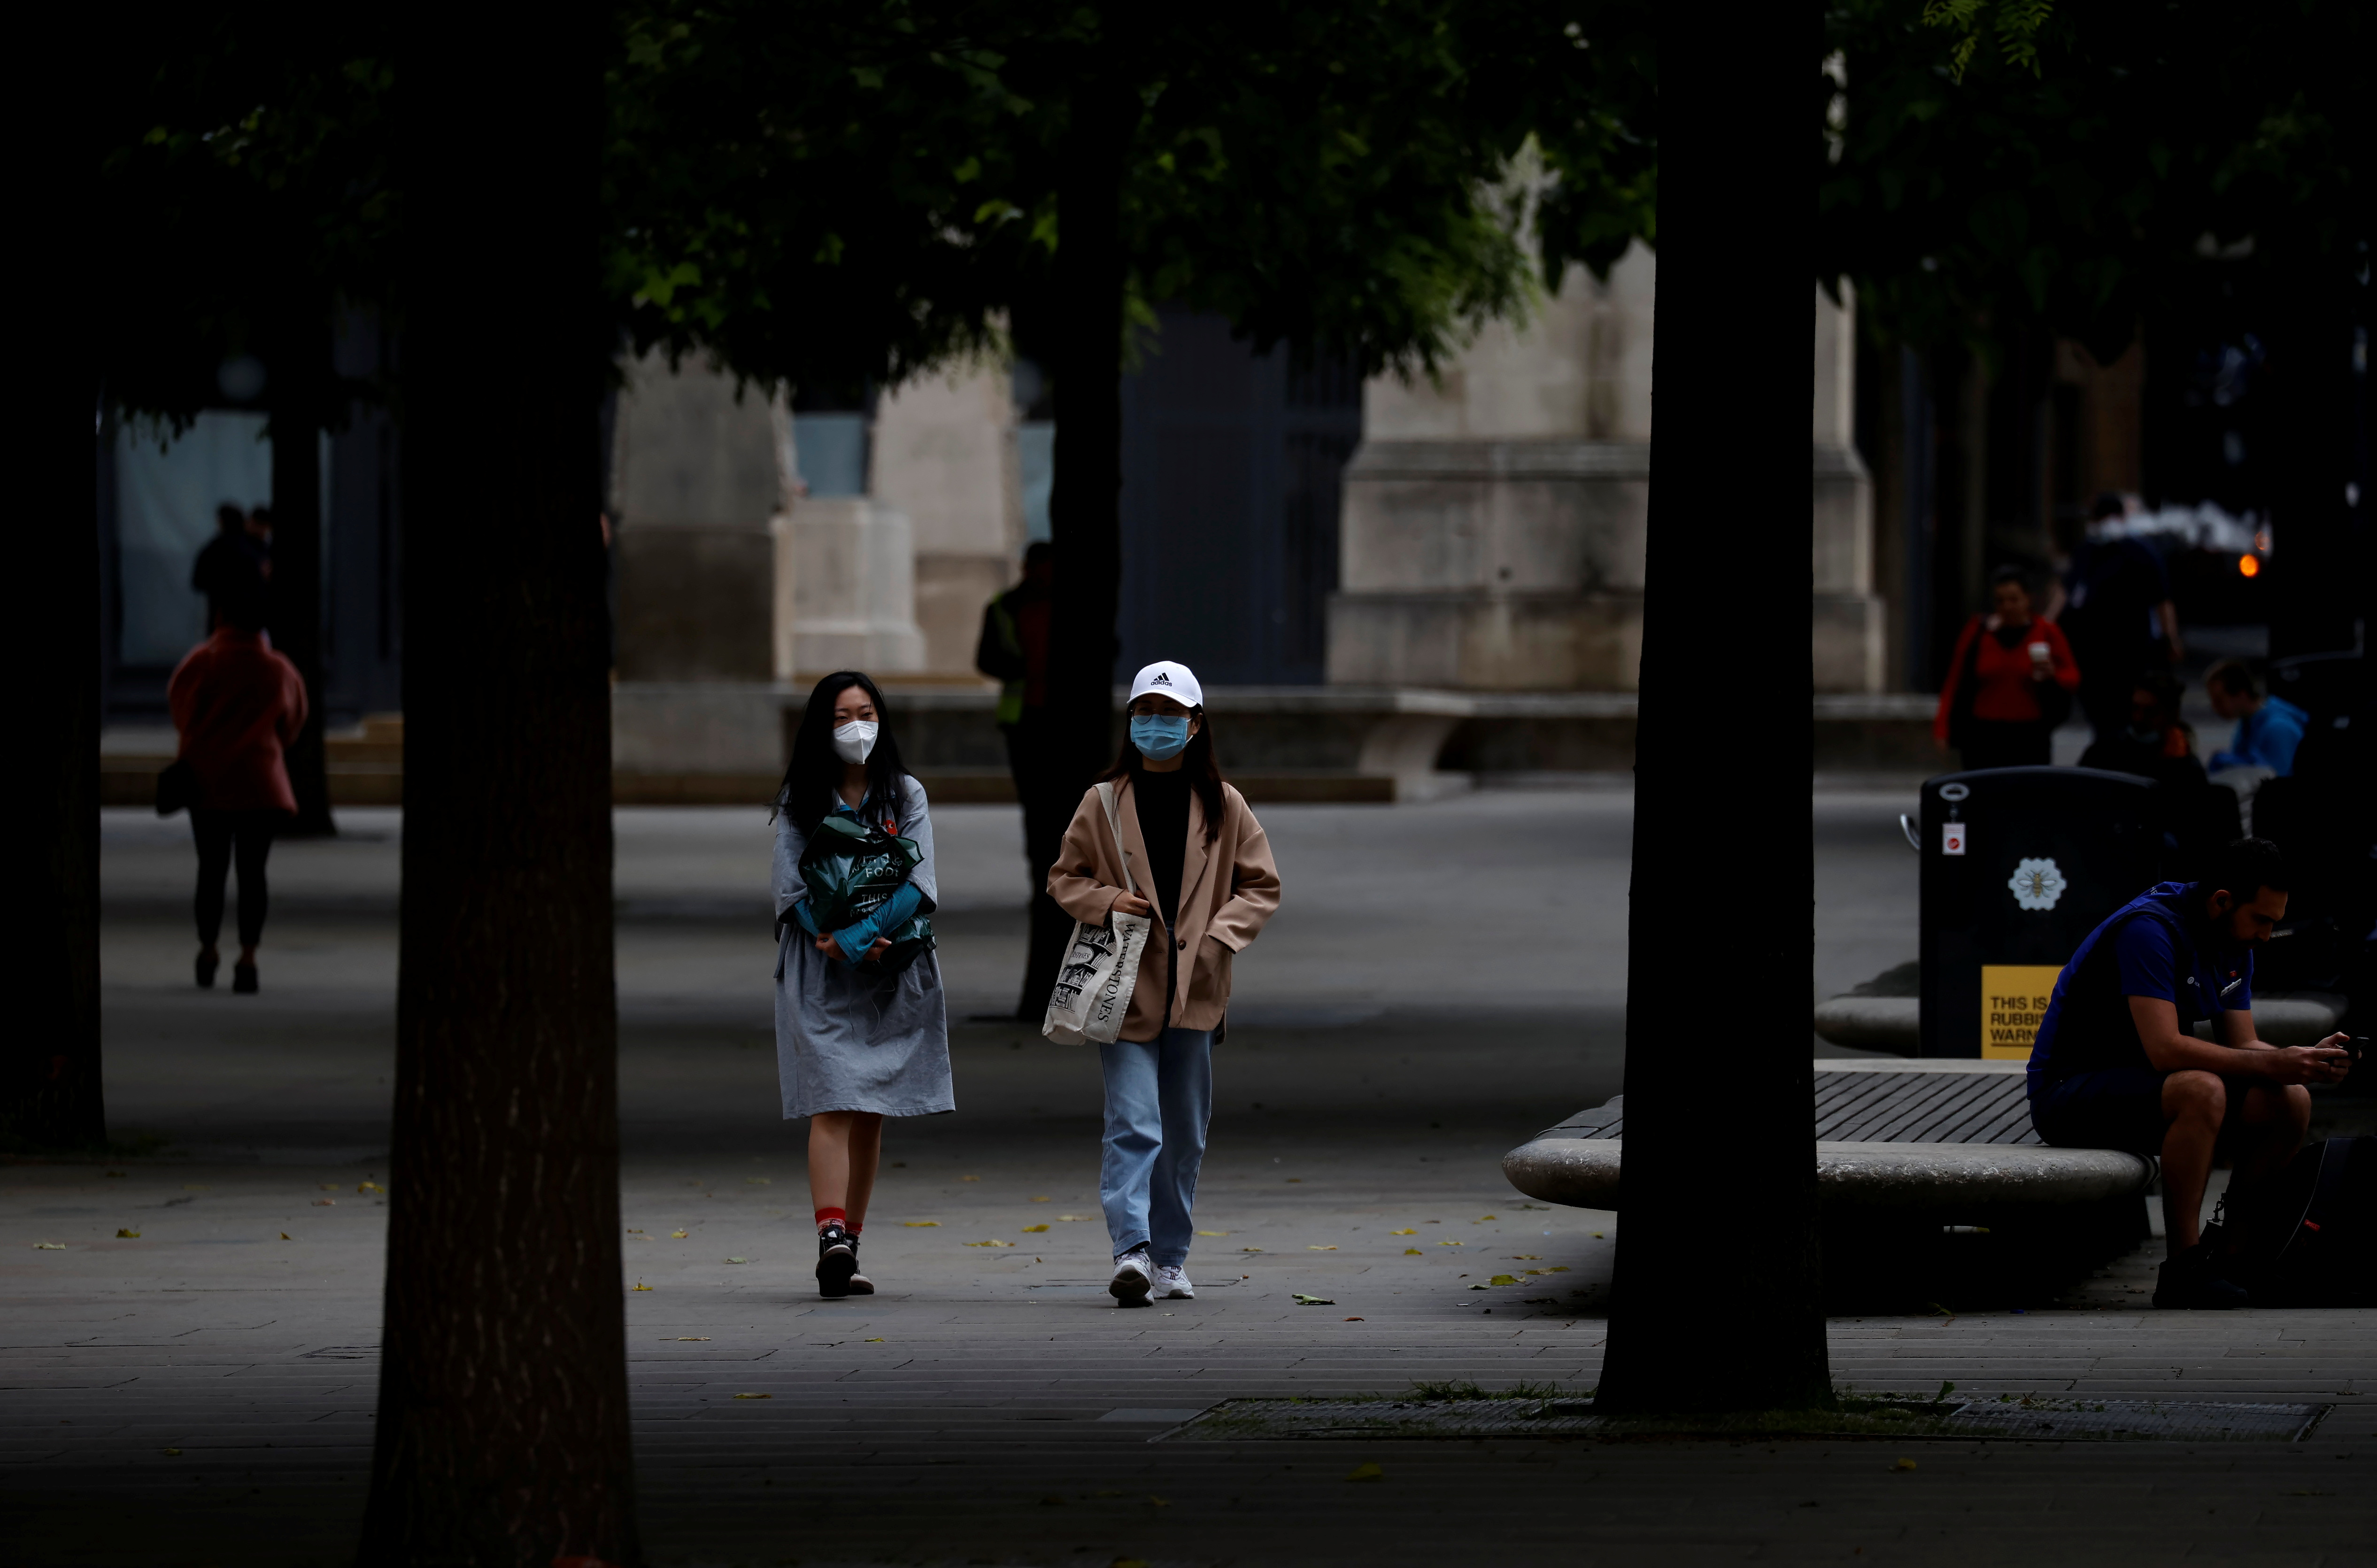 People wear protective masks as they walk through the city centre, amid the outbreak of the coronavirus disease (COVID-19) in Manchester, Britain, June 21, 2021. REUTERS/Phil Noble